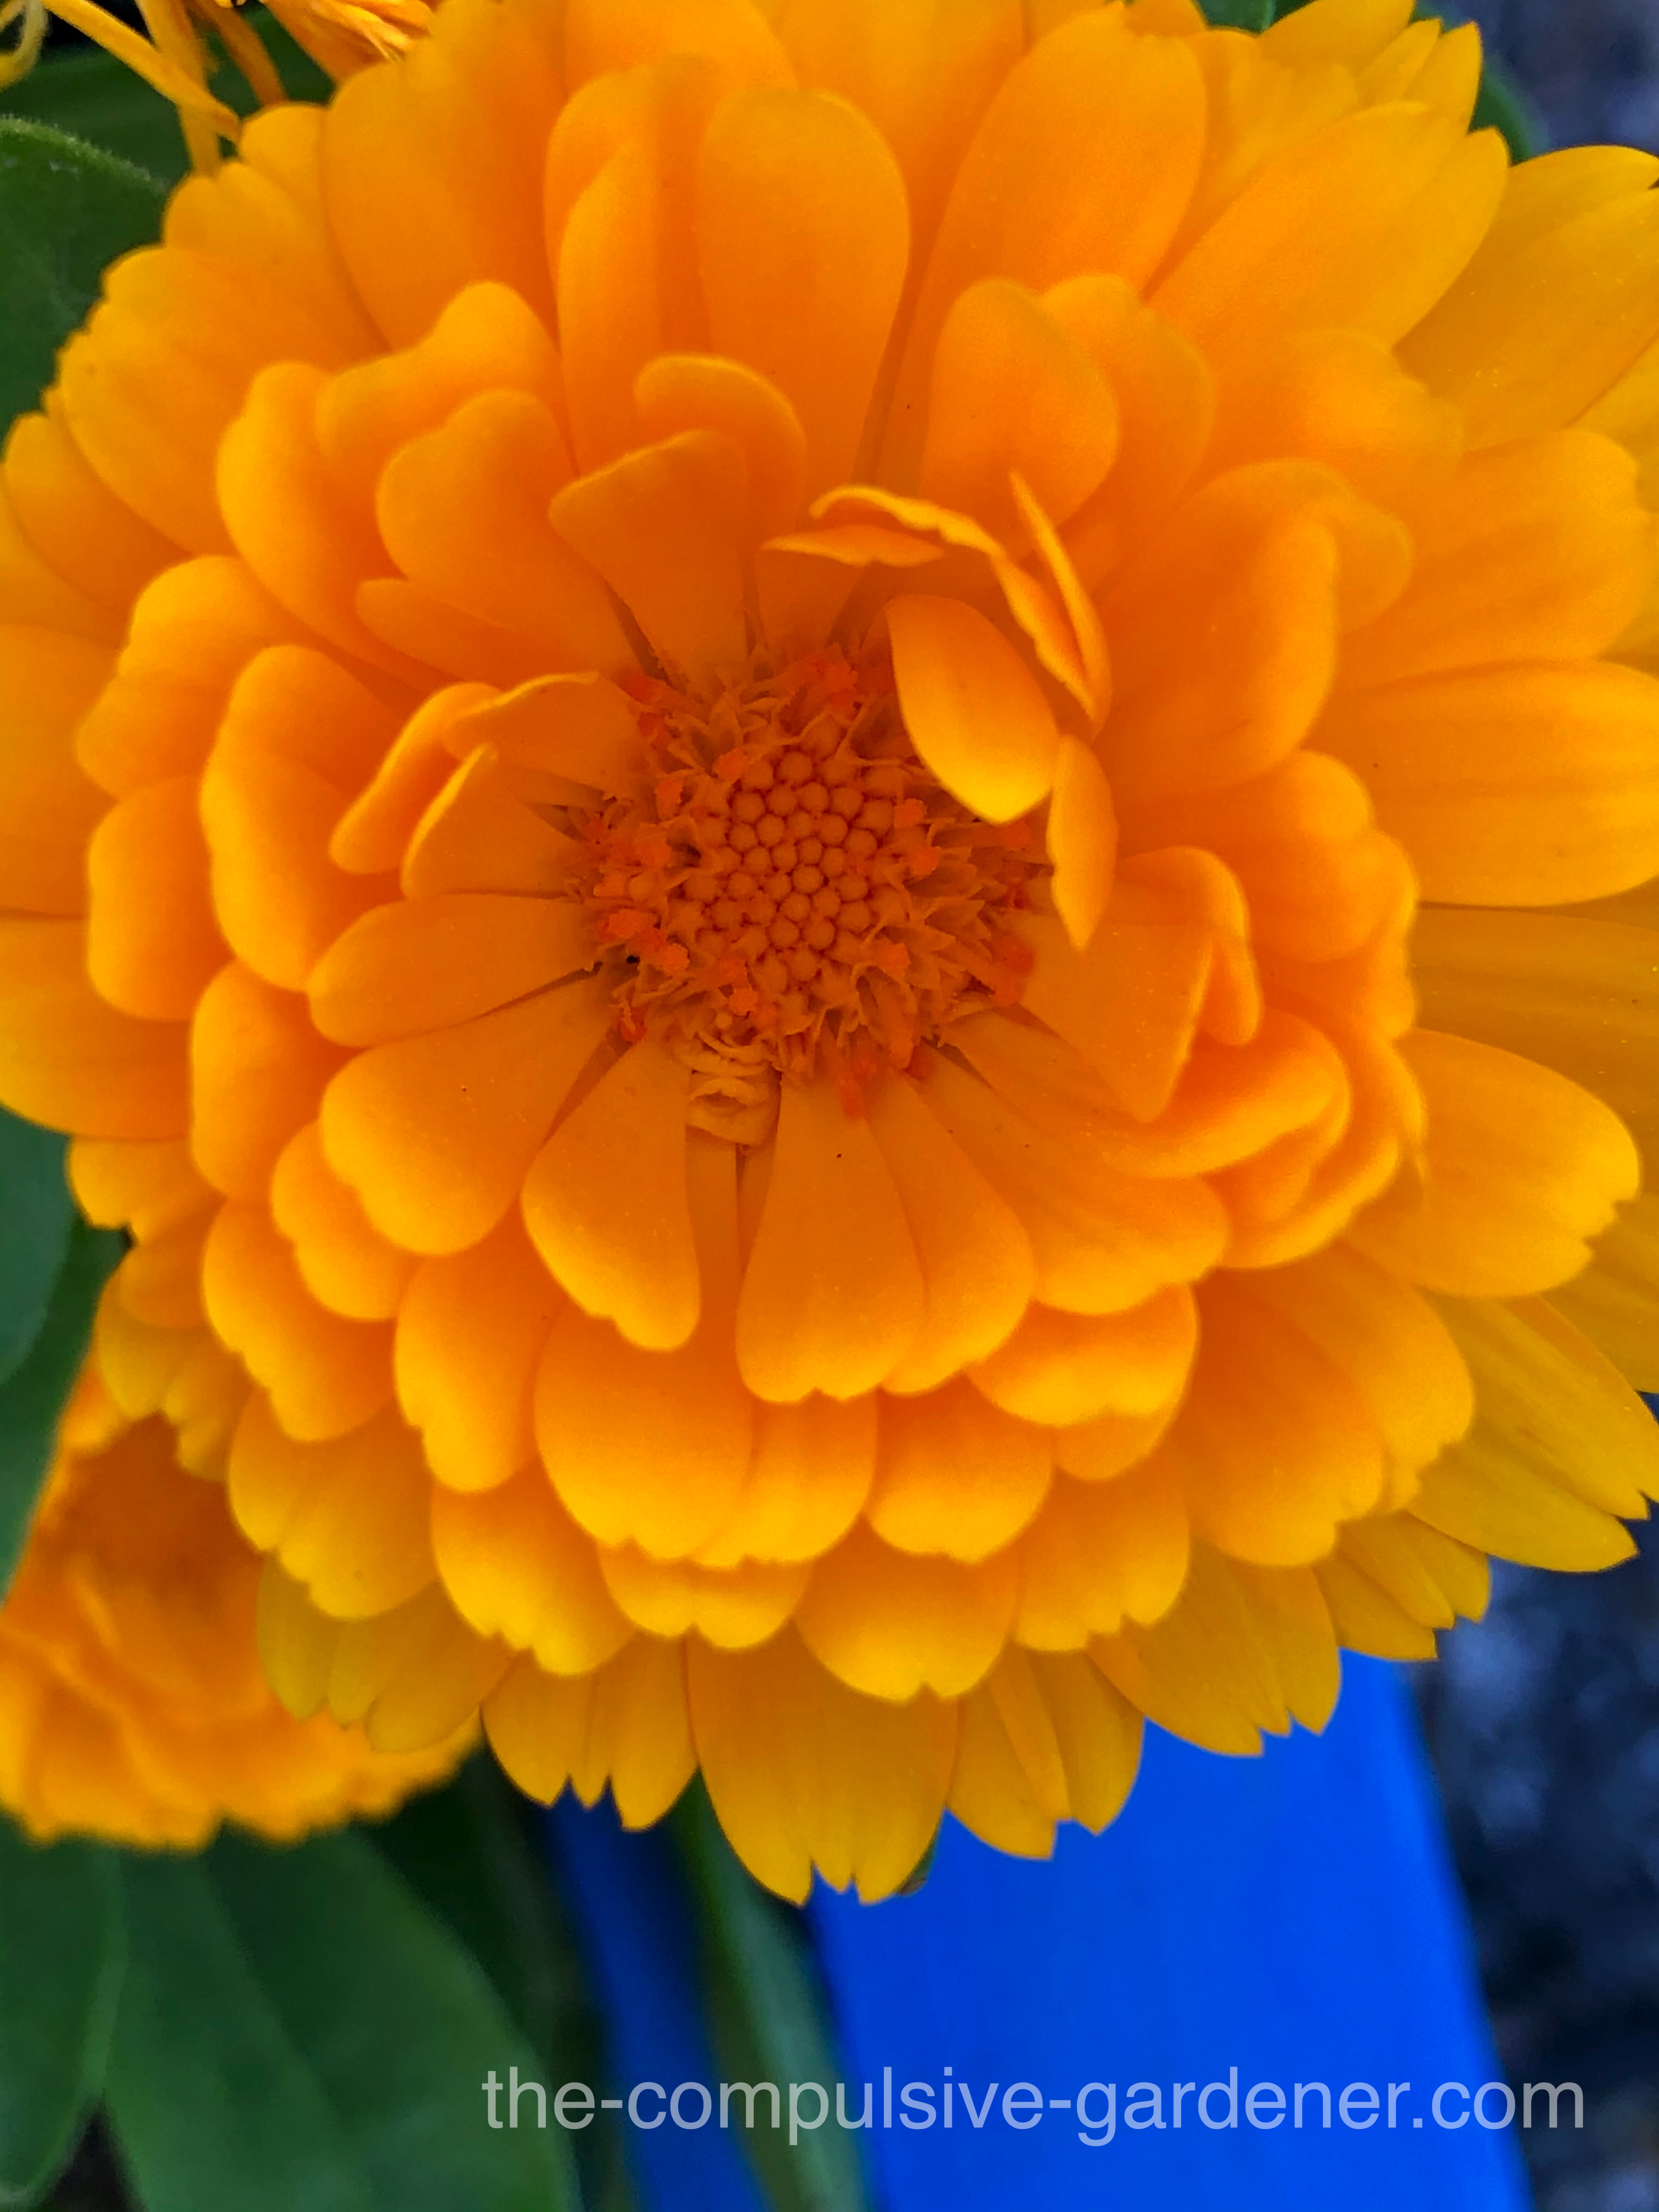 Calendula flowers provide a saturated orange burst of color to the garden. The petals are edible and have other uses as well.